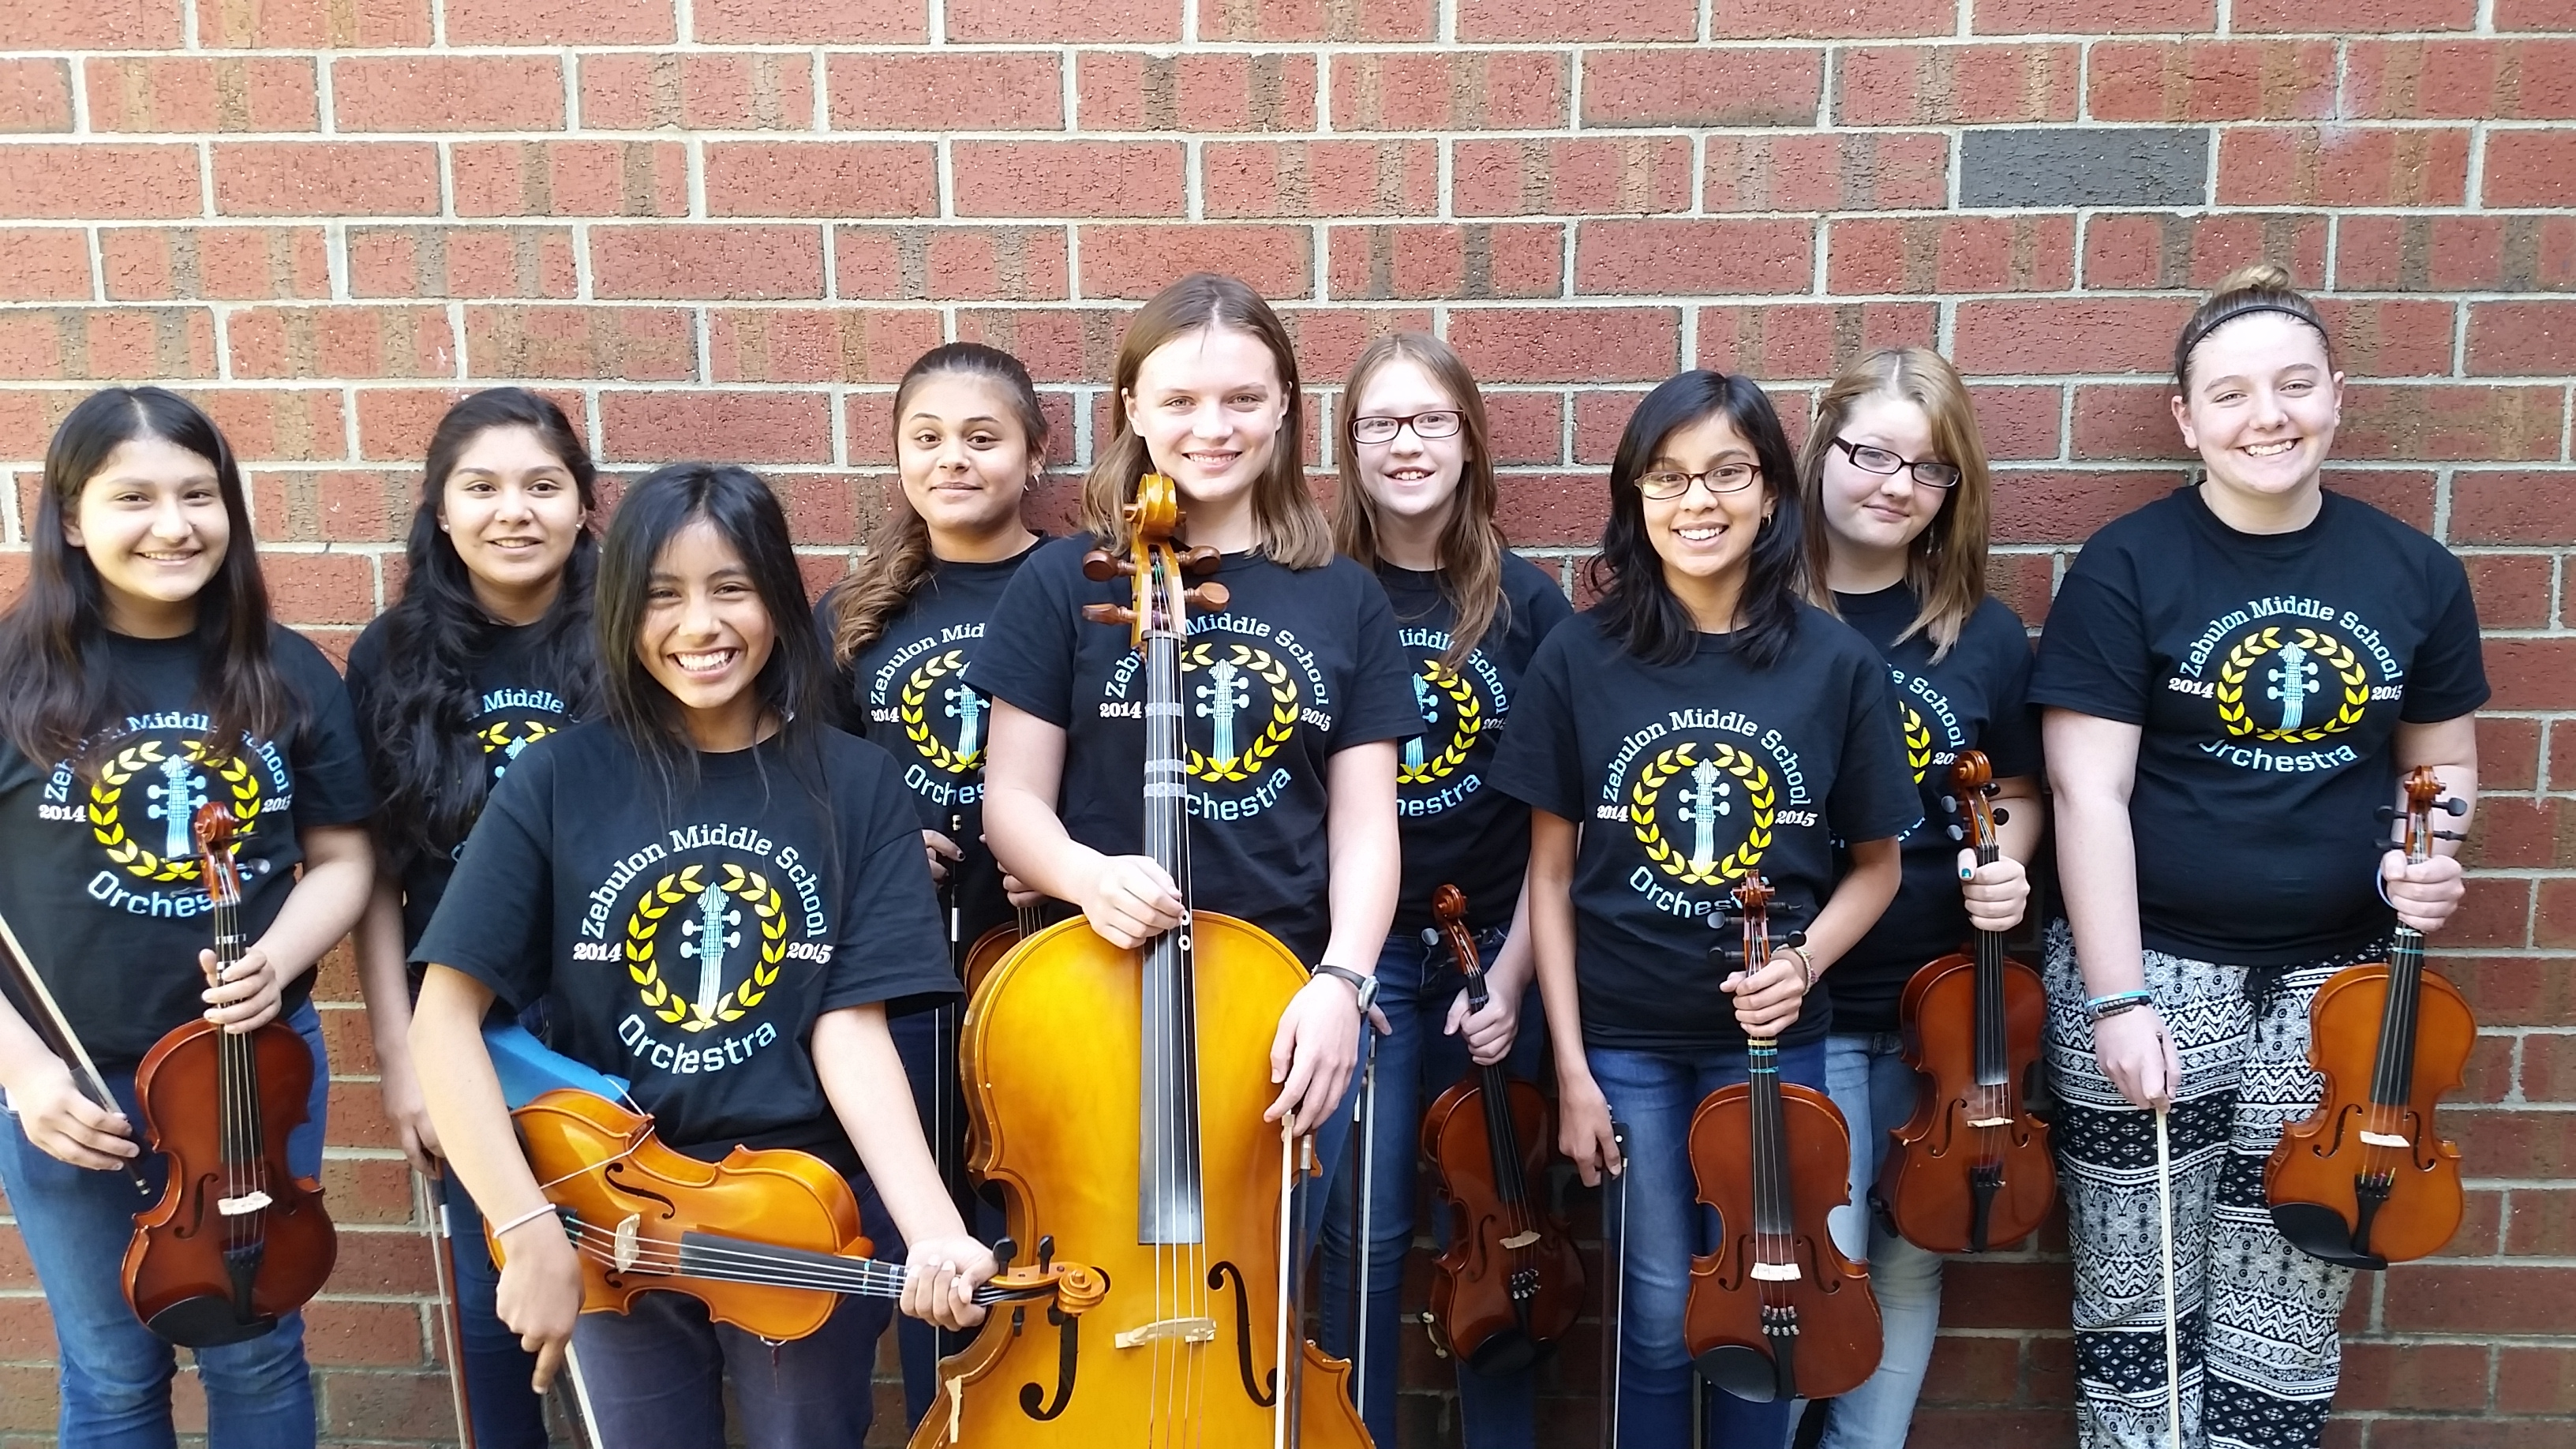 custom t shirts for zebulon middle school orchestra